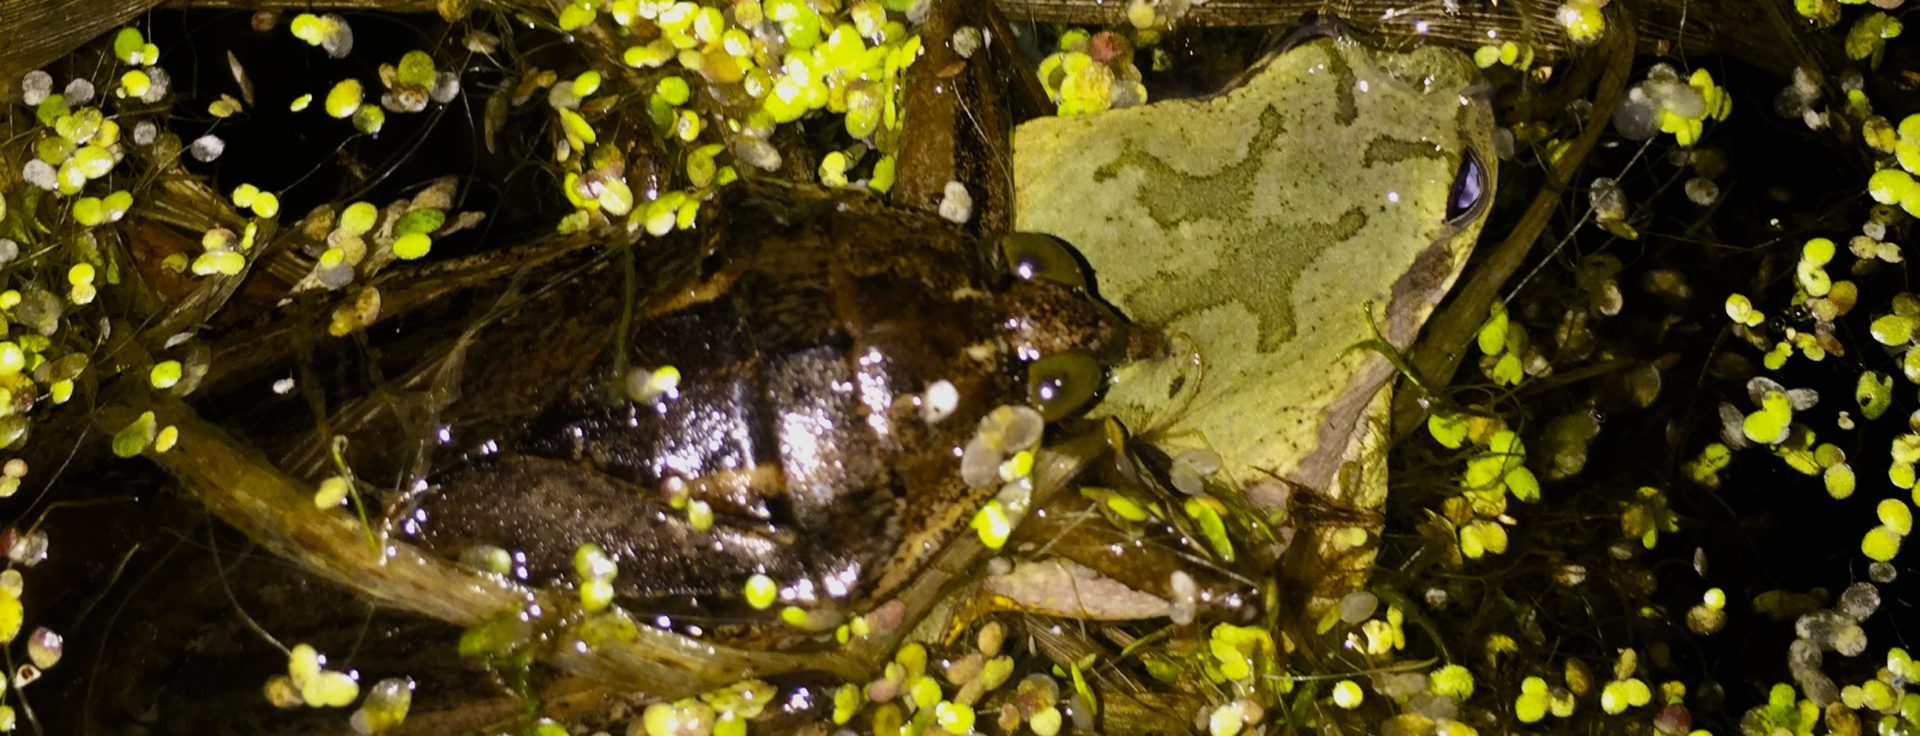 a giant water bug bites a Cope's gray tree frog in a pond. yuck.